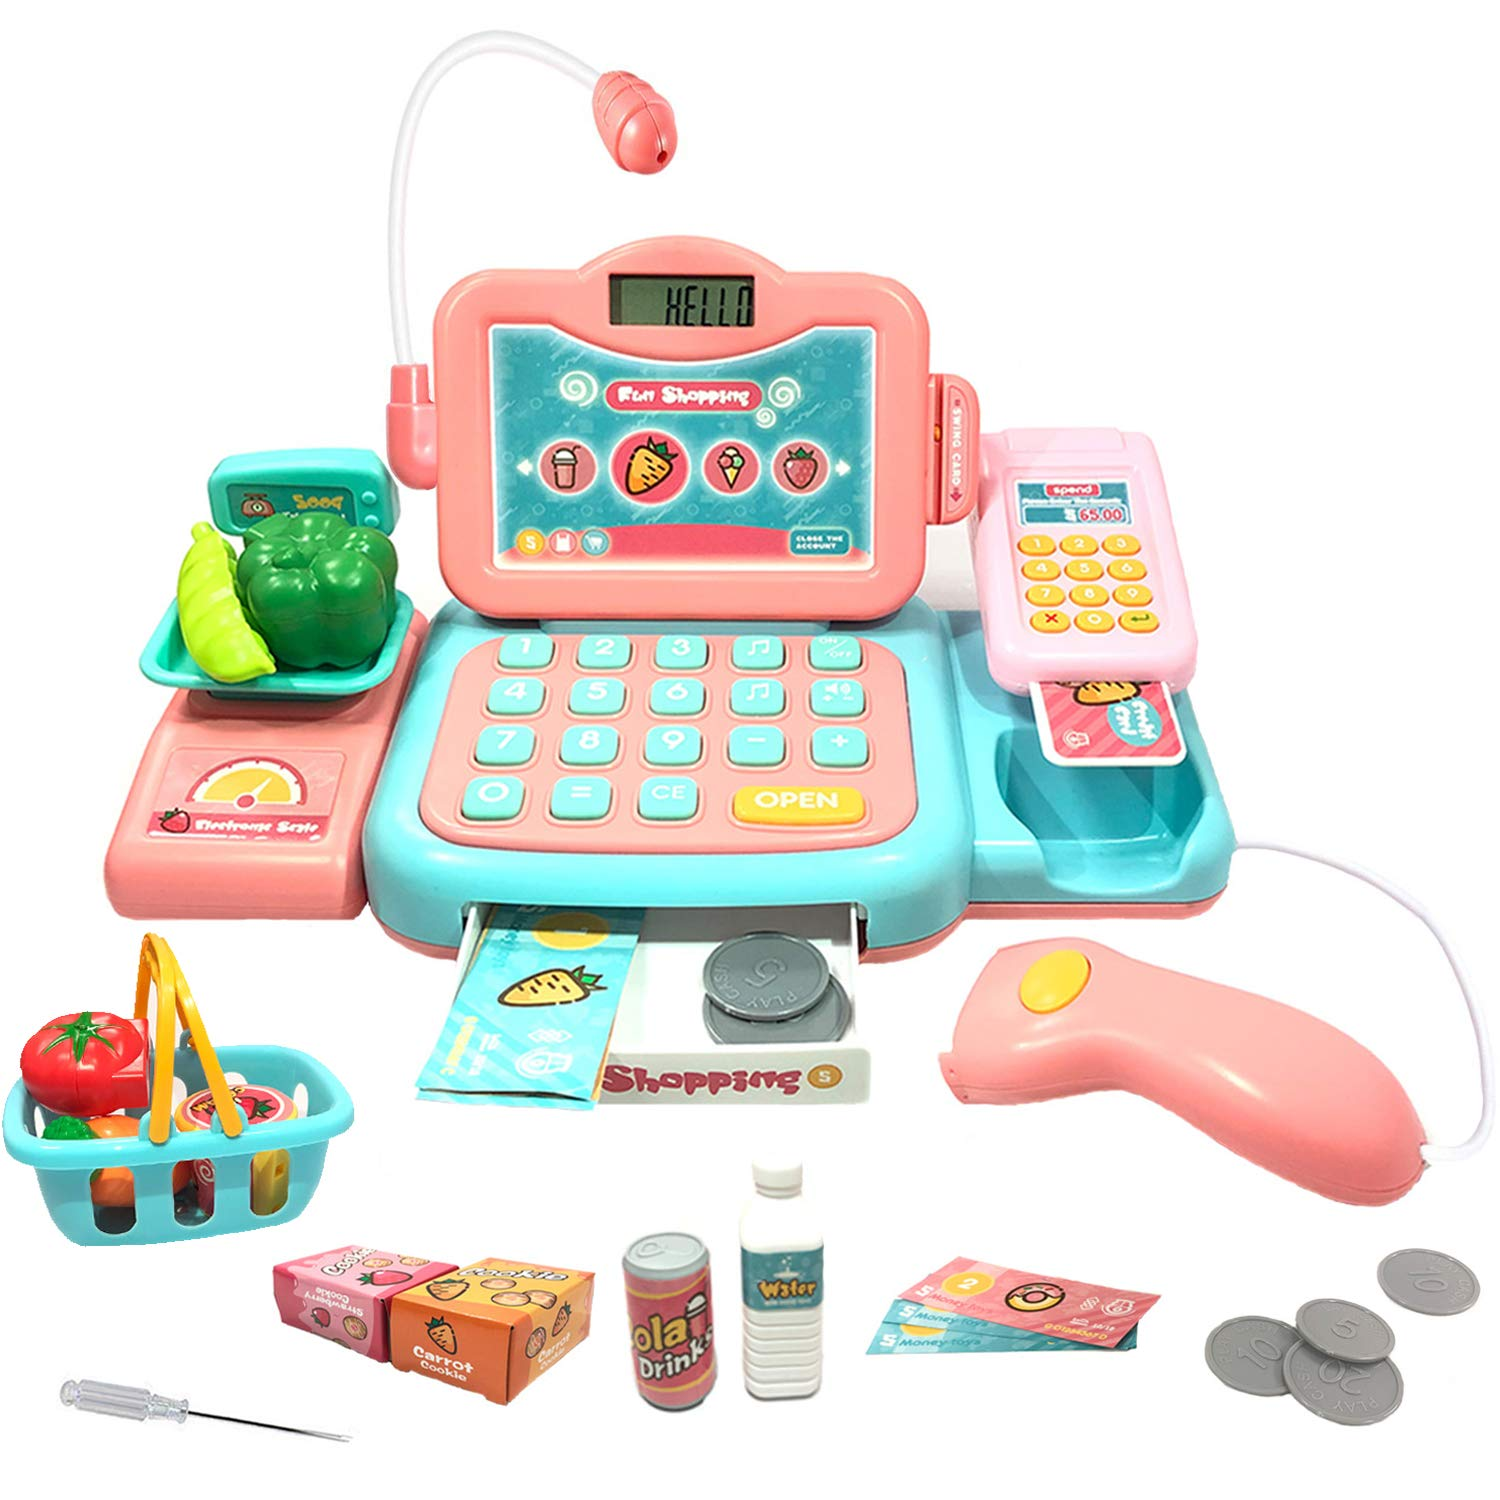 YYoomi Pretend Play Educational Cash Register Toy Classic Counting Toy with Microphone/ Calculator/ Scanner/ Sound/ Music for Kids & Toddlers & Preschoolers by YYoomi